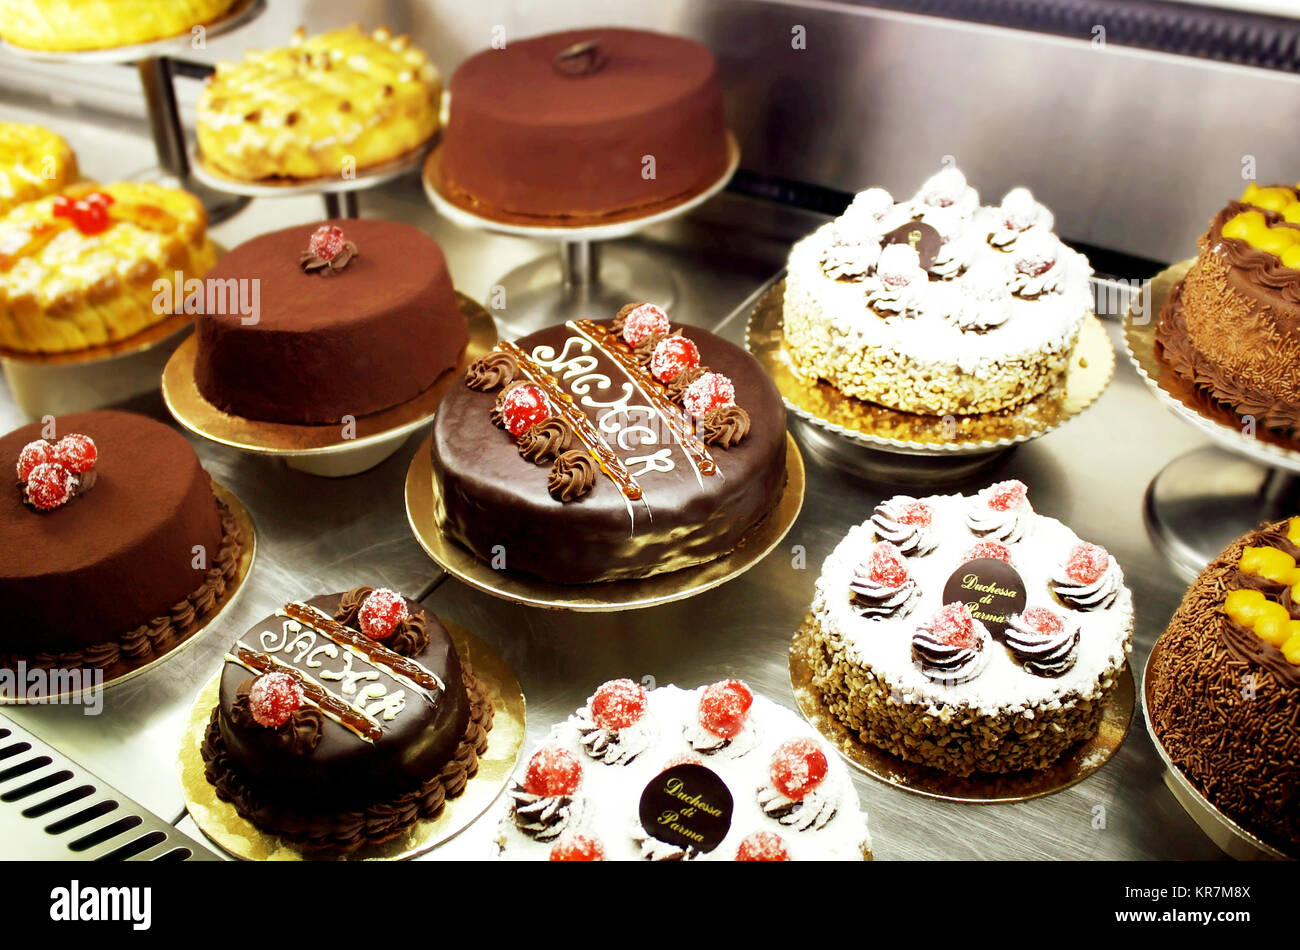 An Italian variety of different decorated cakes - Stock Image